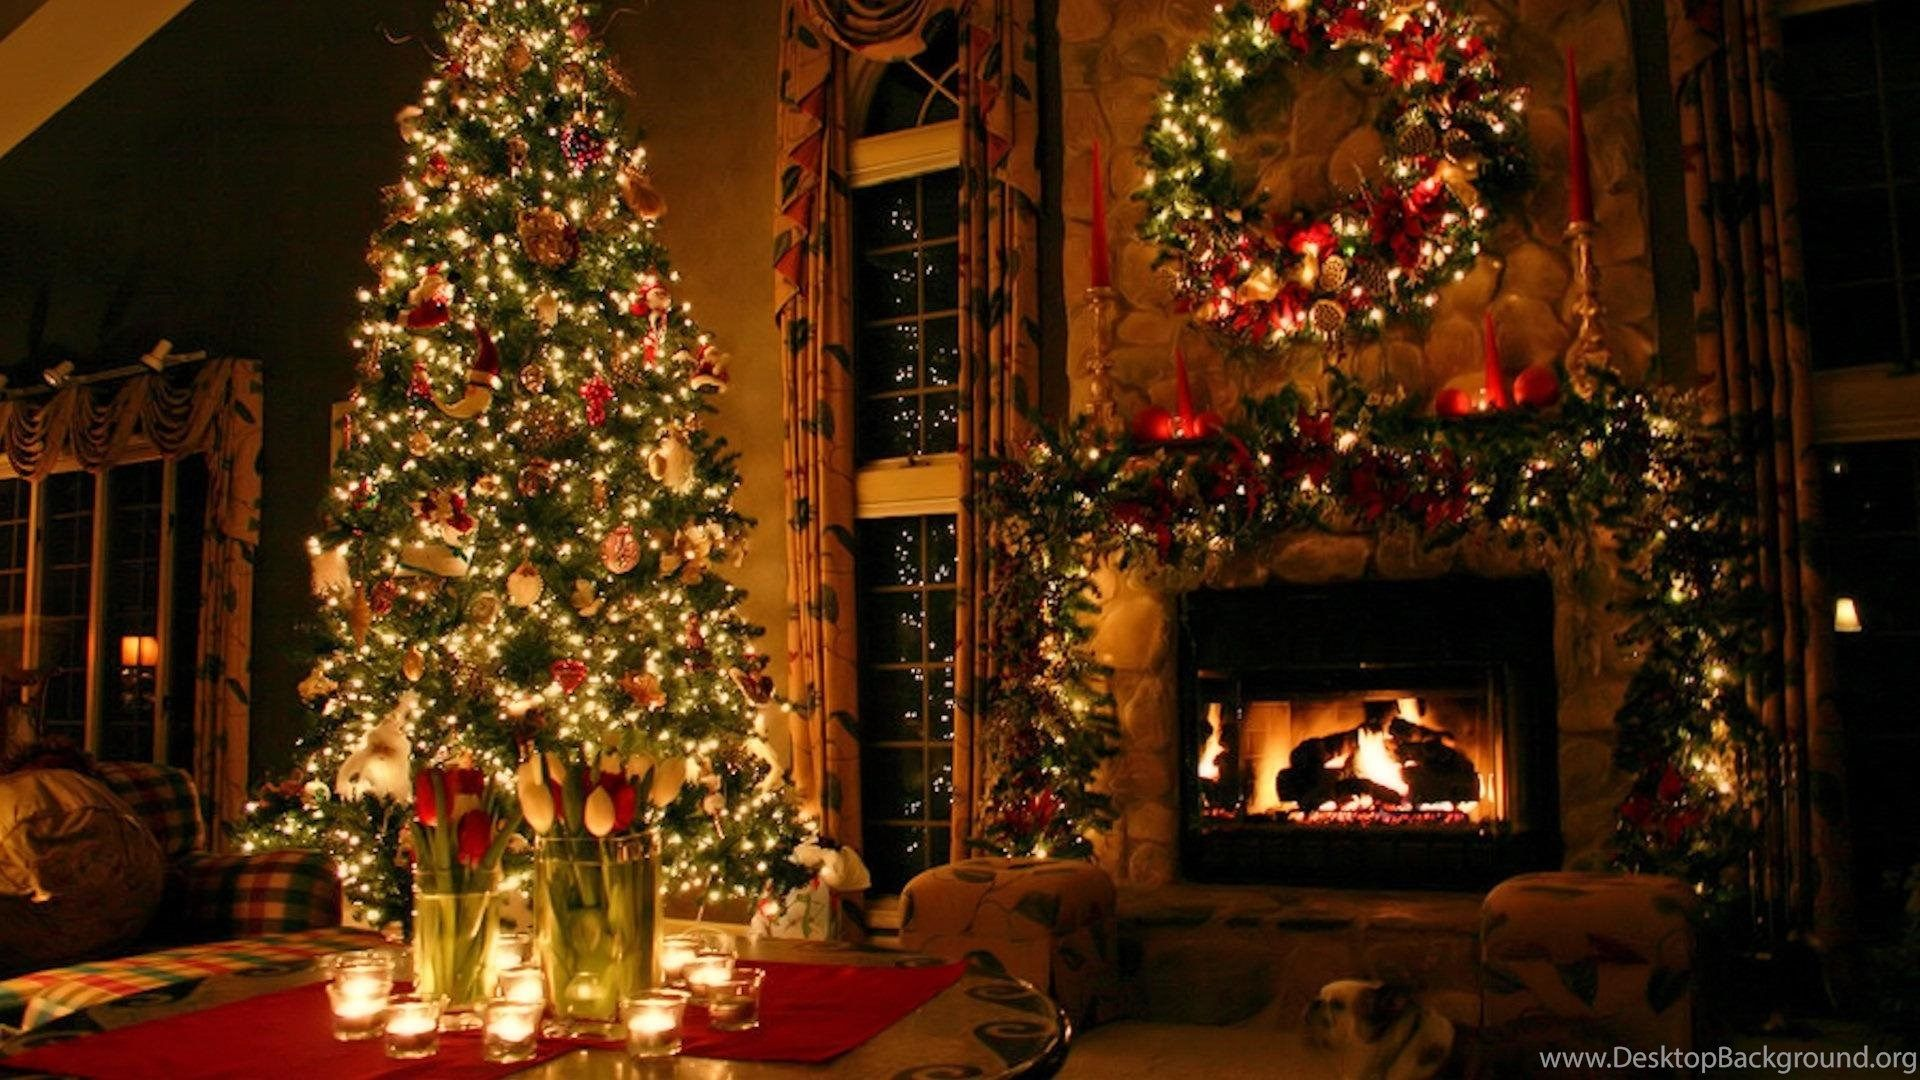 1920x1080 Christmas Decorations HD Wallpapers Desktop Background